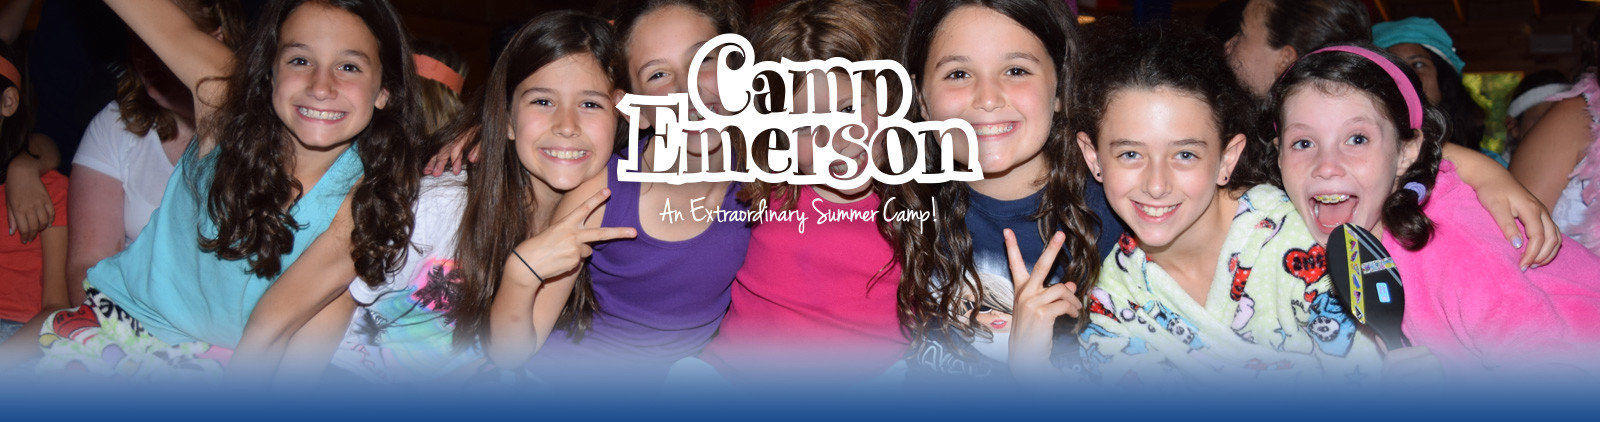 ab03925ce77 Camp Emerson - Overnight Camp 2 week program